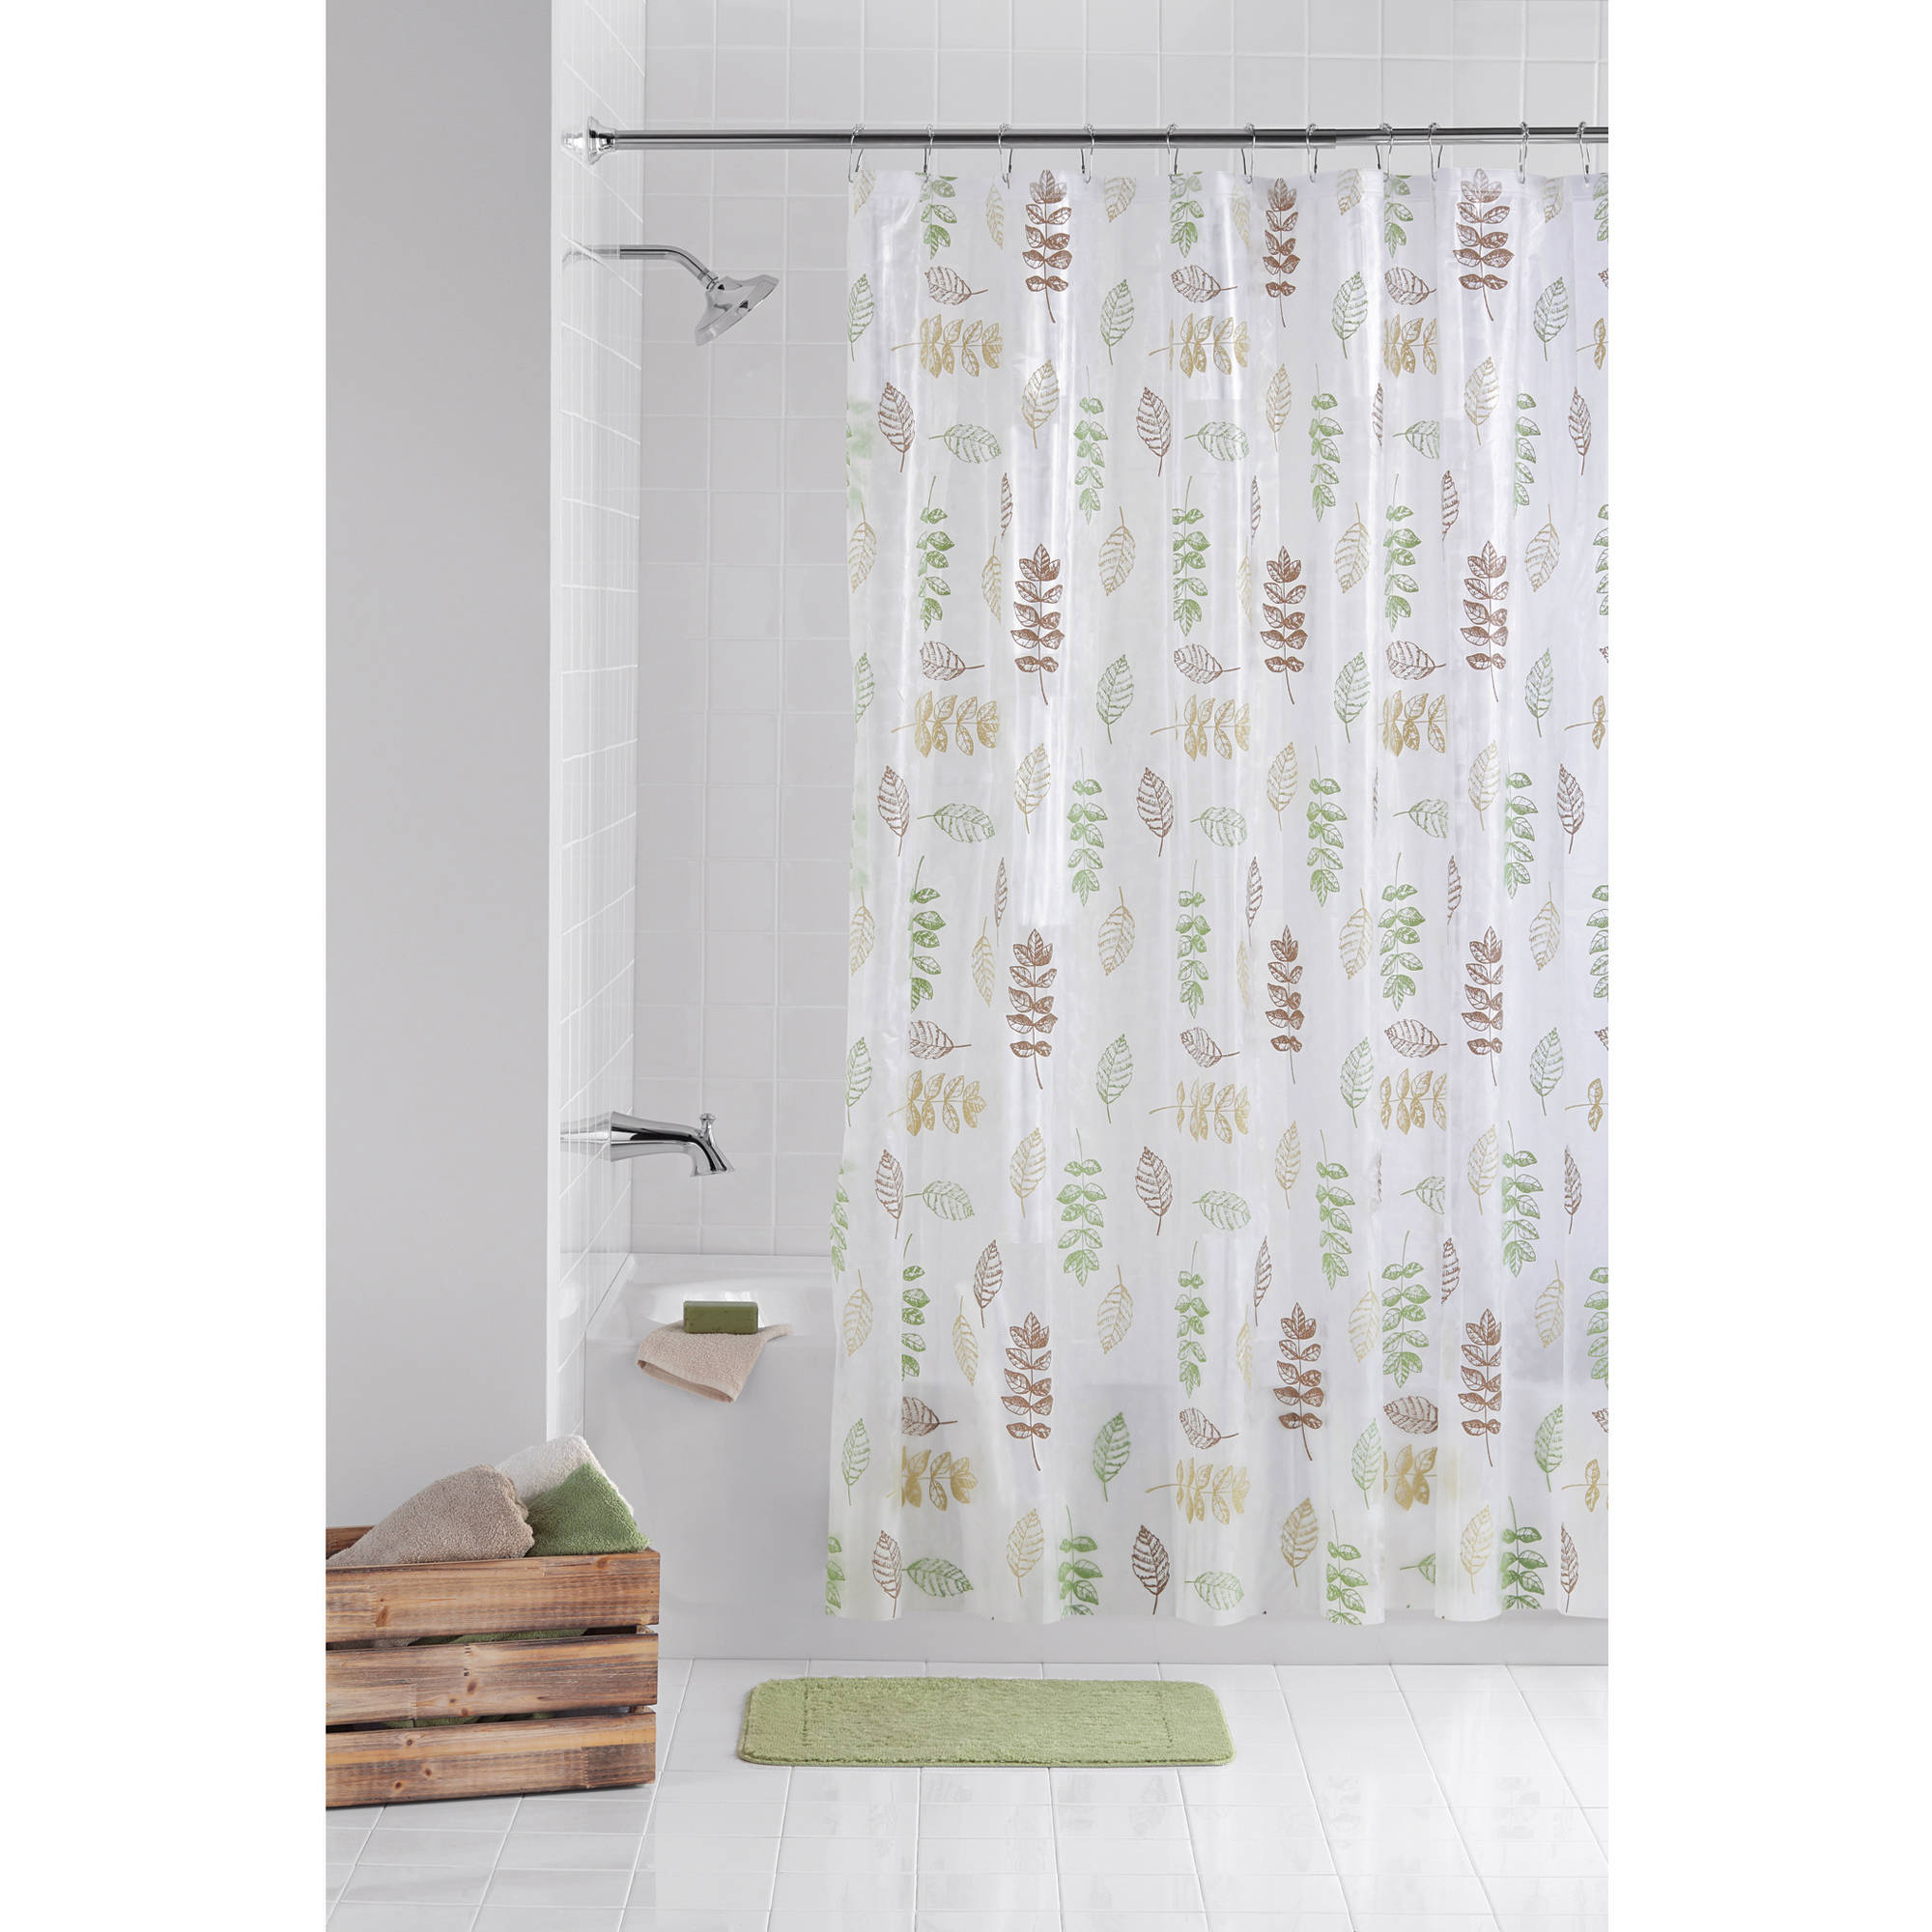 Bathroom Curtains bathroom curtains